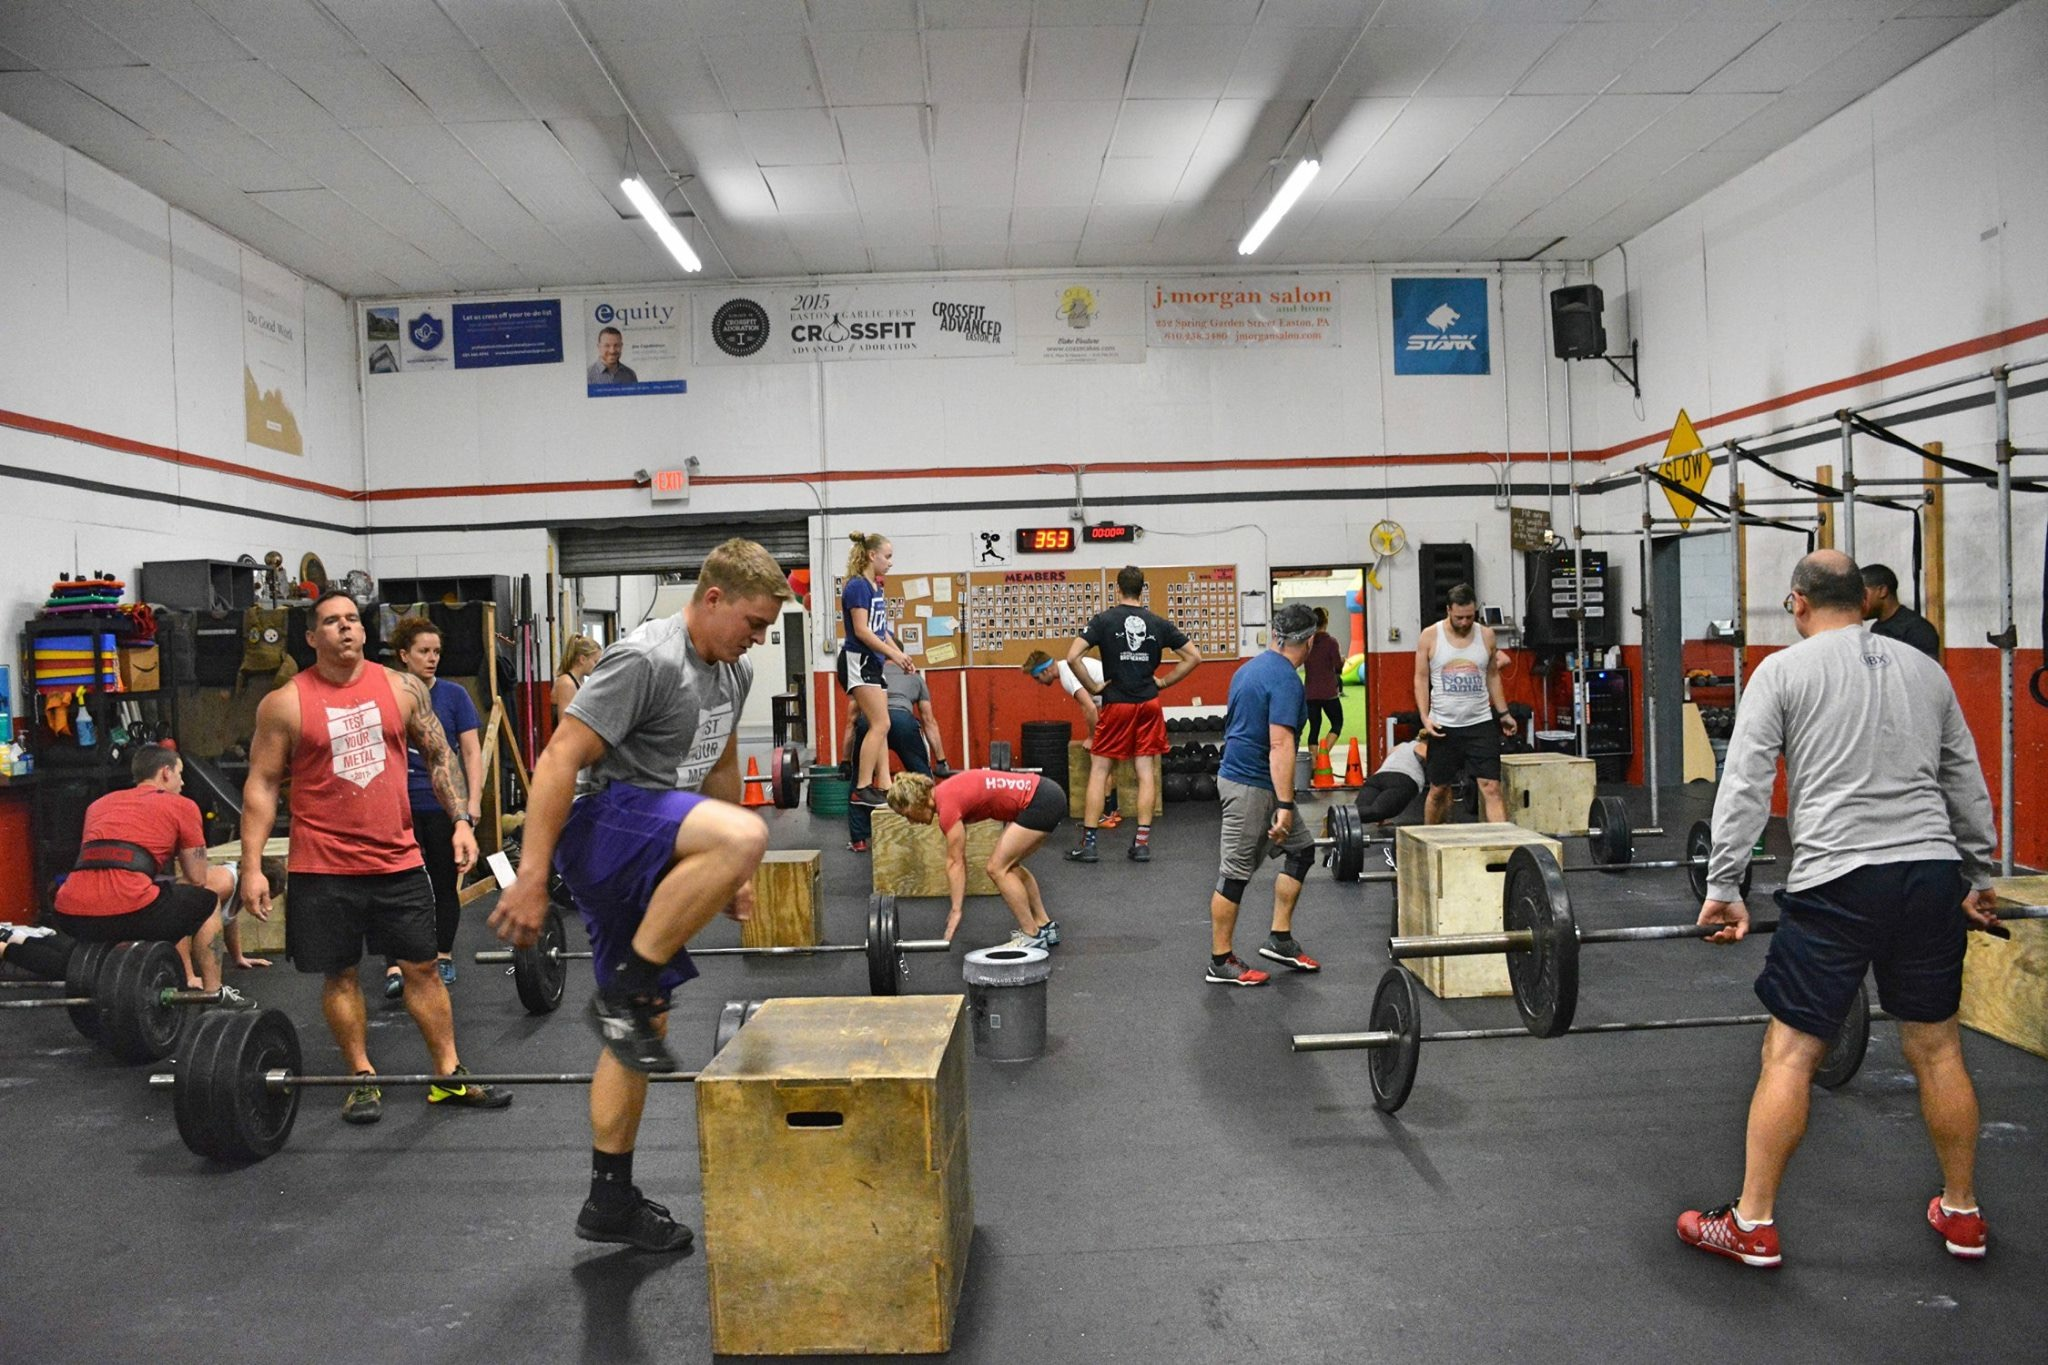 Sunday, October 28 WOD